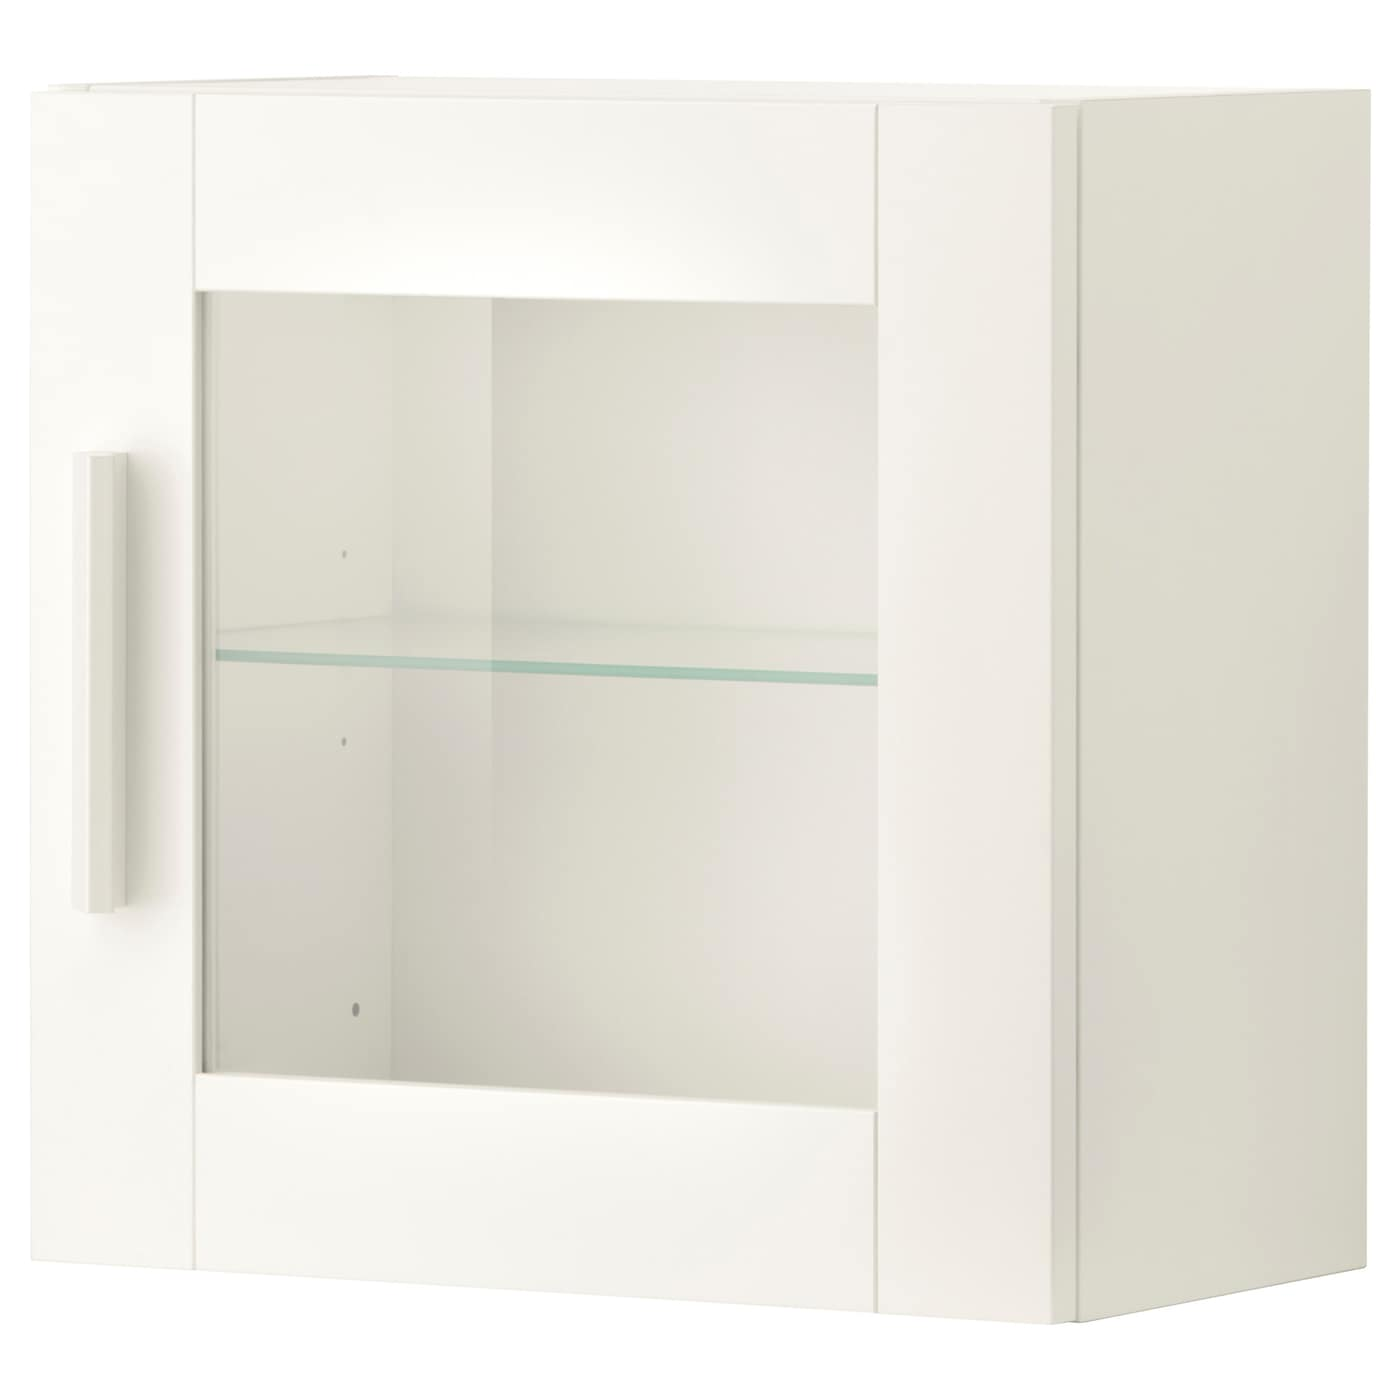 IKEA BRIMNES wall cabinet with glass door